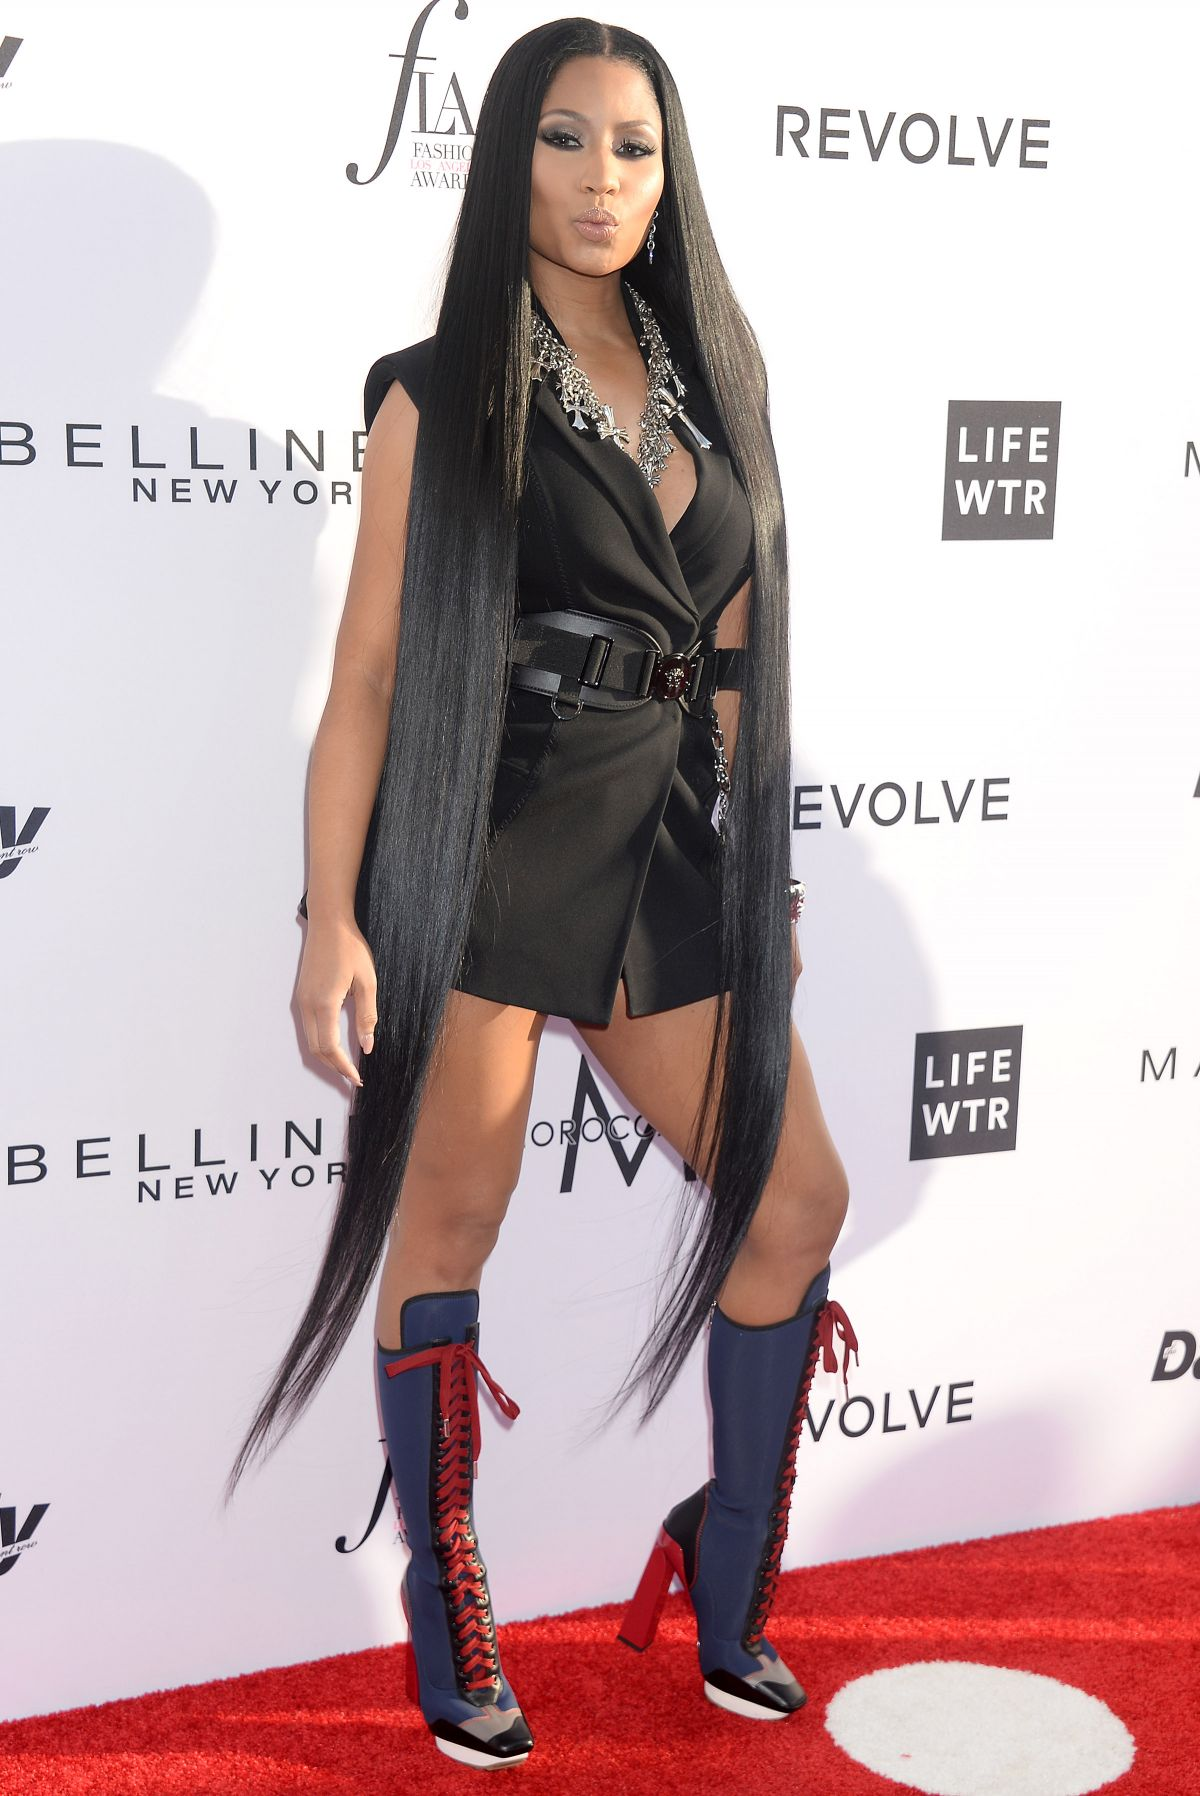 Nicki Minaj At Daily Front Row's 3rd Annual Fashion Los Angeles Awards – West Hollywood   nicki-minaj-at-daily-front-row-s-3rd-annual-fashion-los-angeles-awards-west-hollywood_14